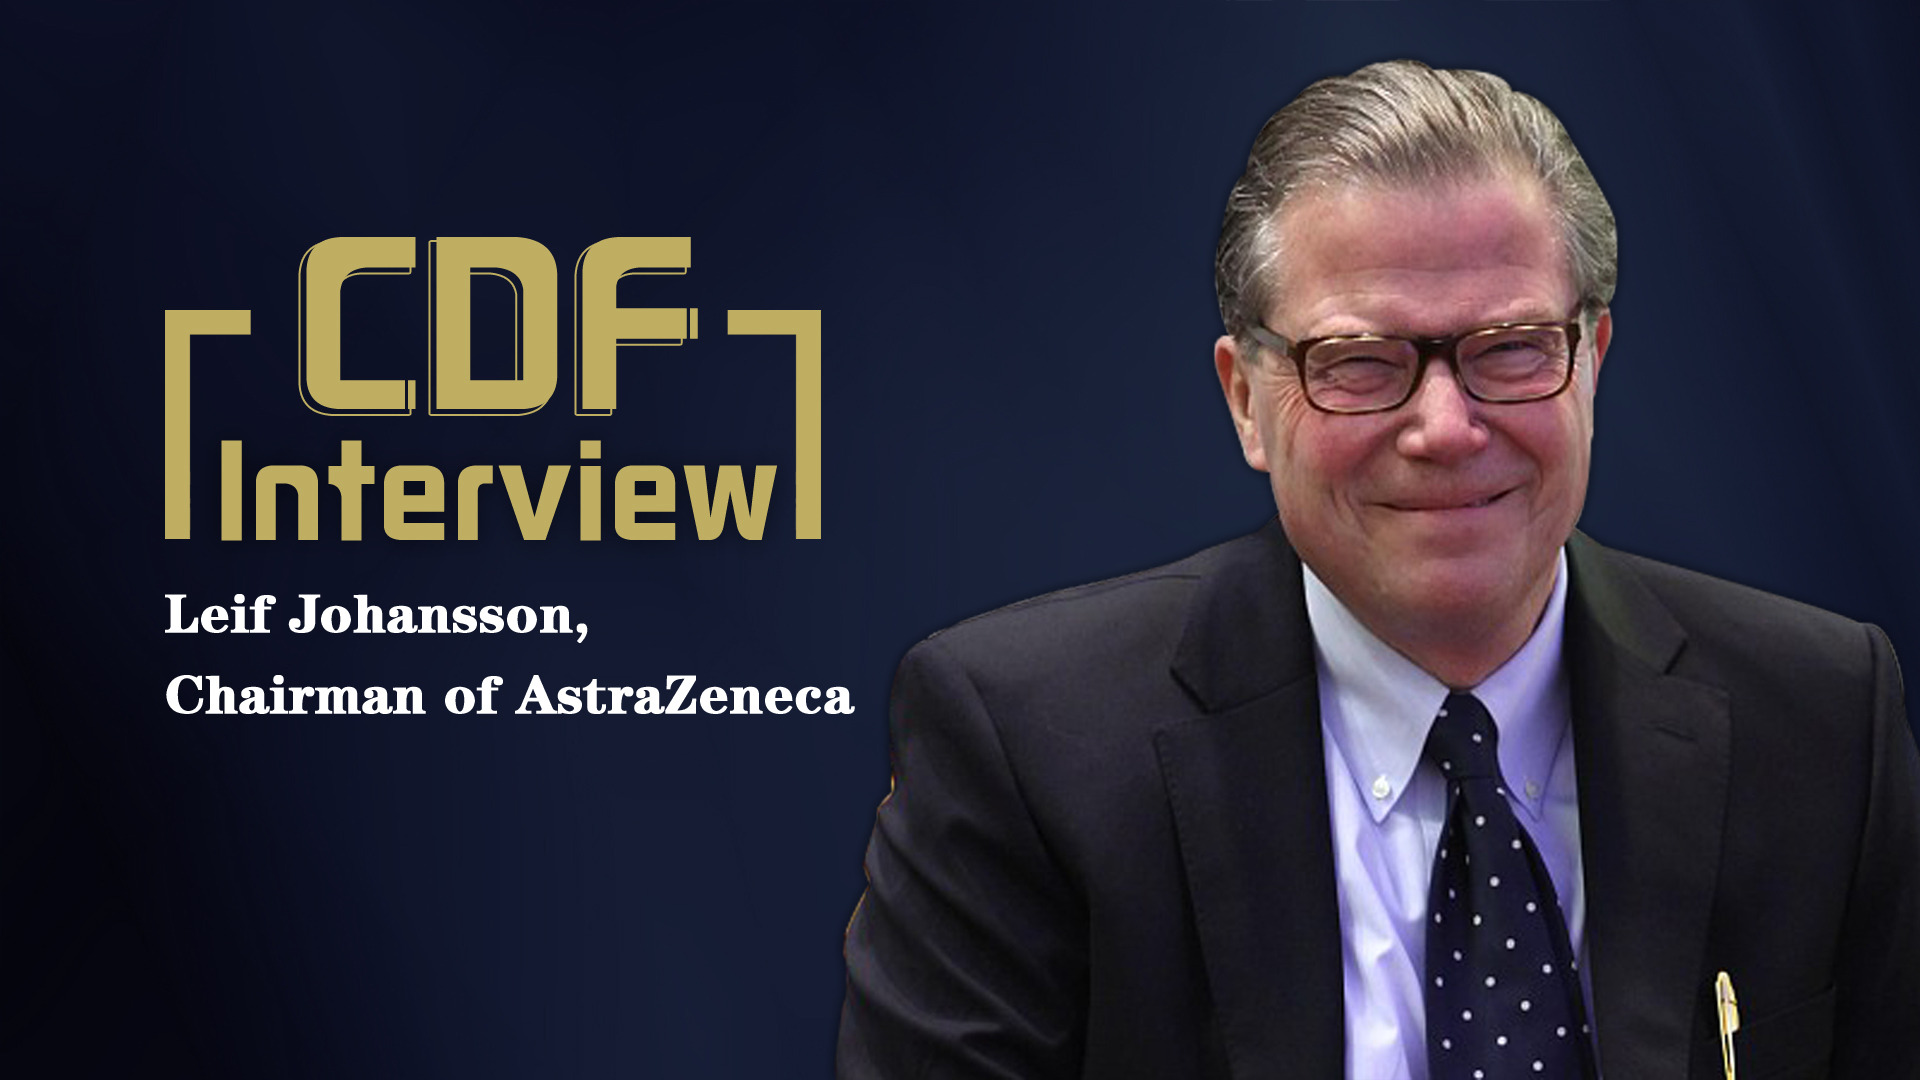 AstraZeneca's chairman is optimistic about China's healthcare market